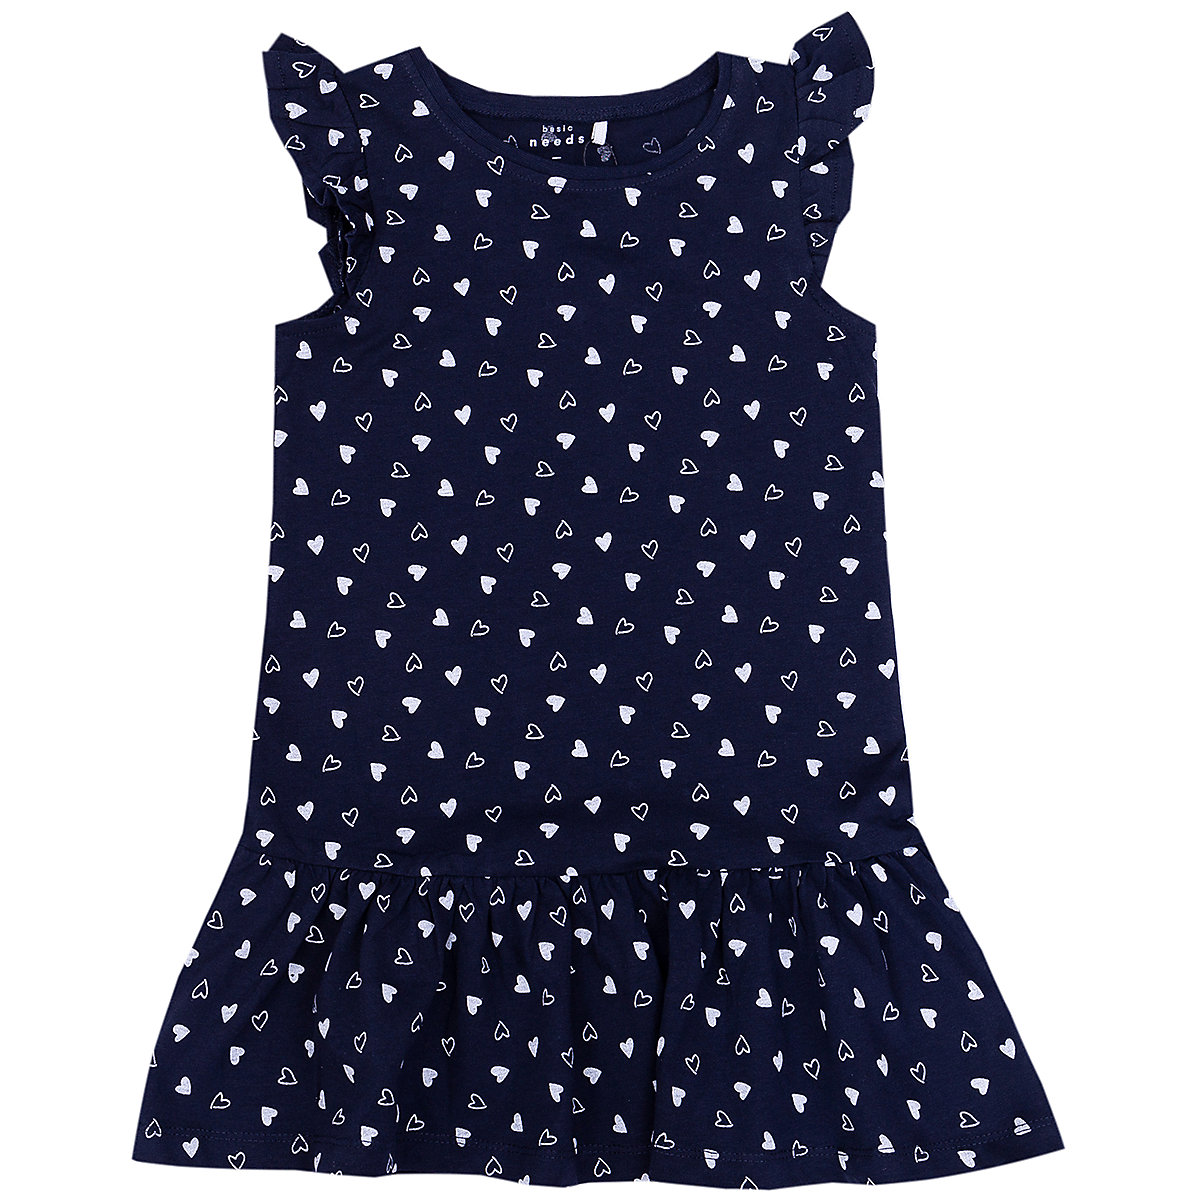 NAME IT Dresses 9383944 Dress girl children checkered pattern collar fitted silhouette sequins Cotton Casual Blue Short Sleeve